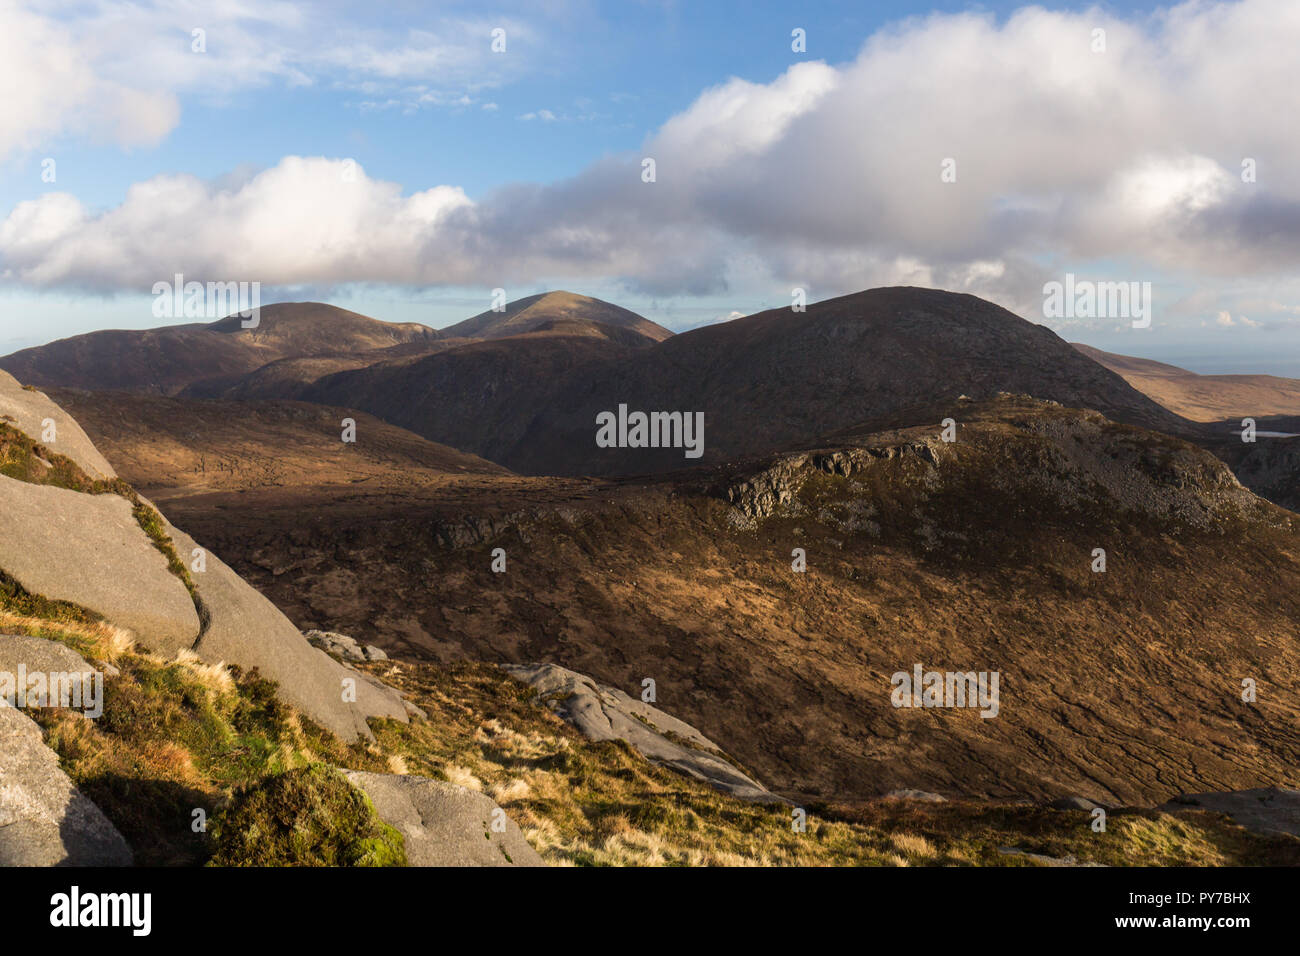 View from the summit of Doan Mountain looking towars Slieve Donard in the distance. Ben Crom mountain on right, Slieve Lamagan behind. Mourne Mountain - Stock Image